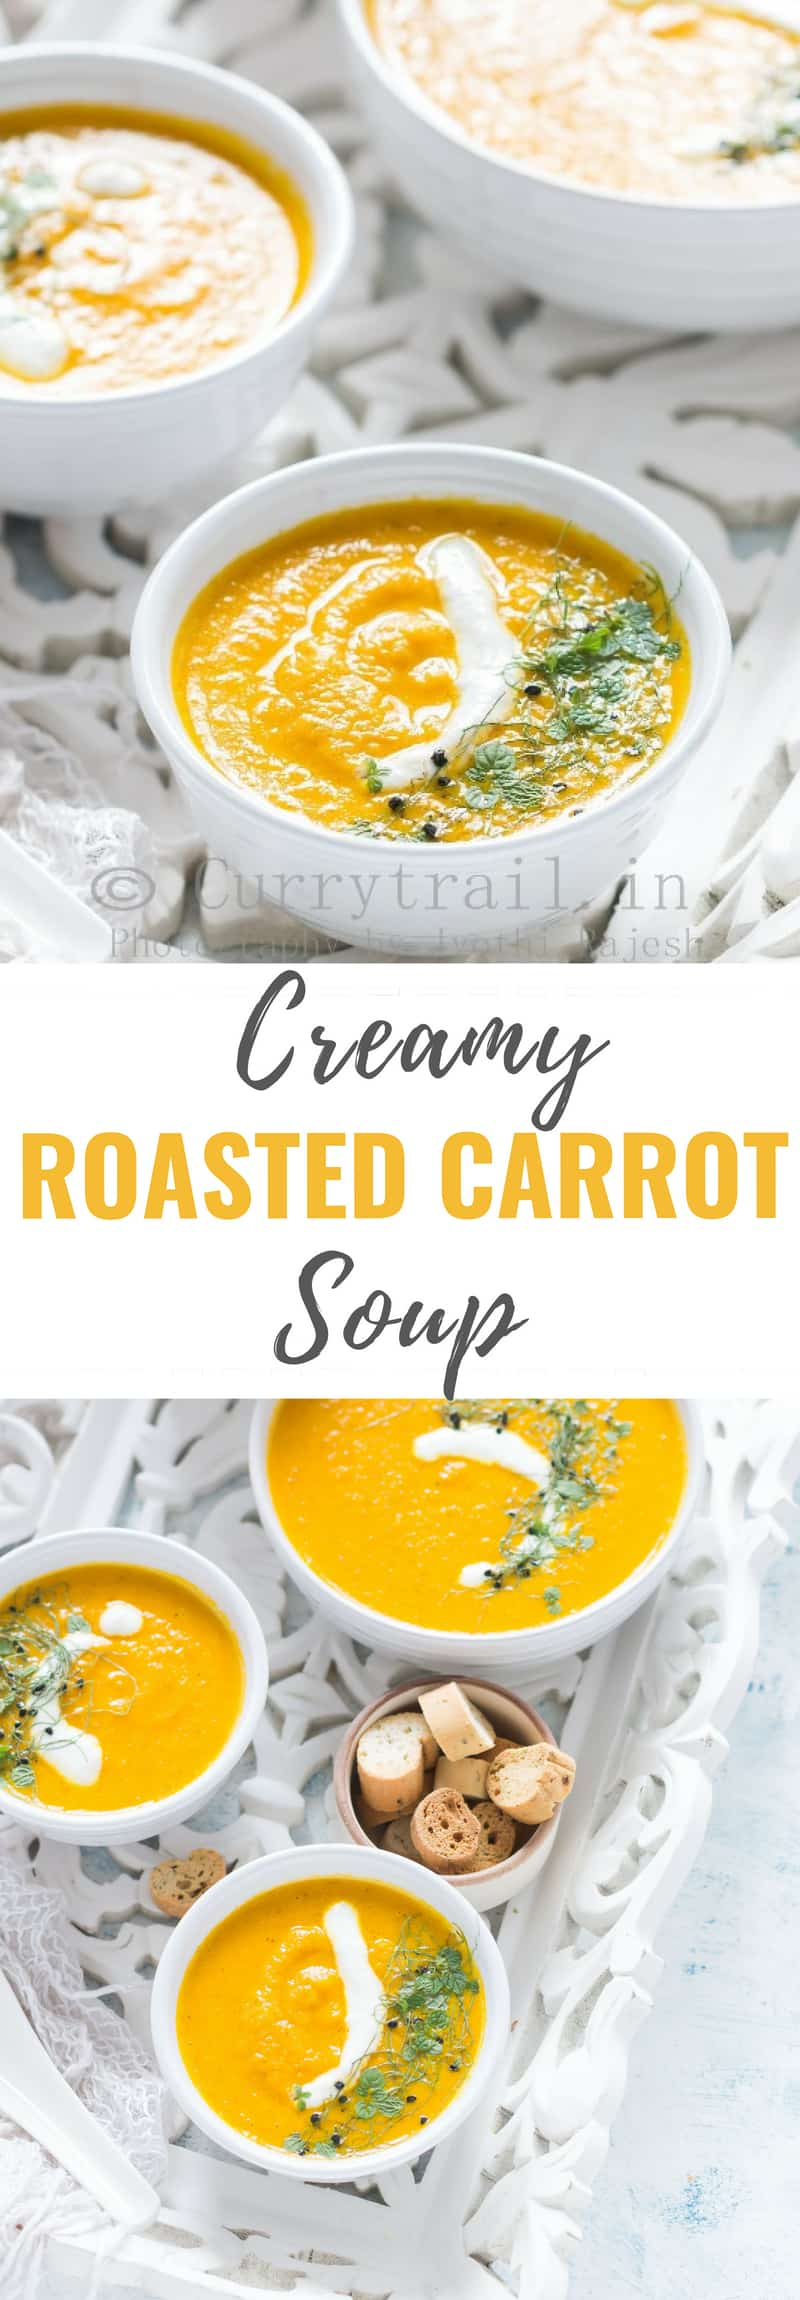 Roasted carrot soup with text overlay